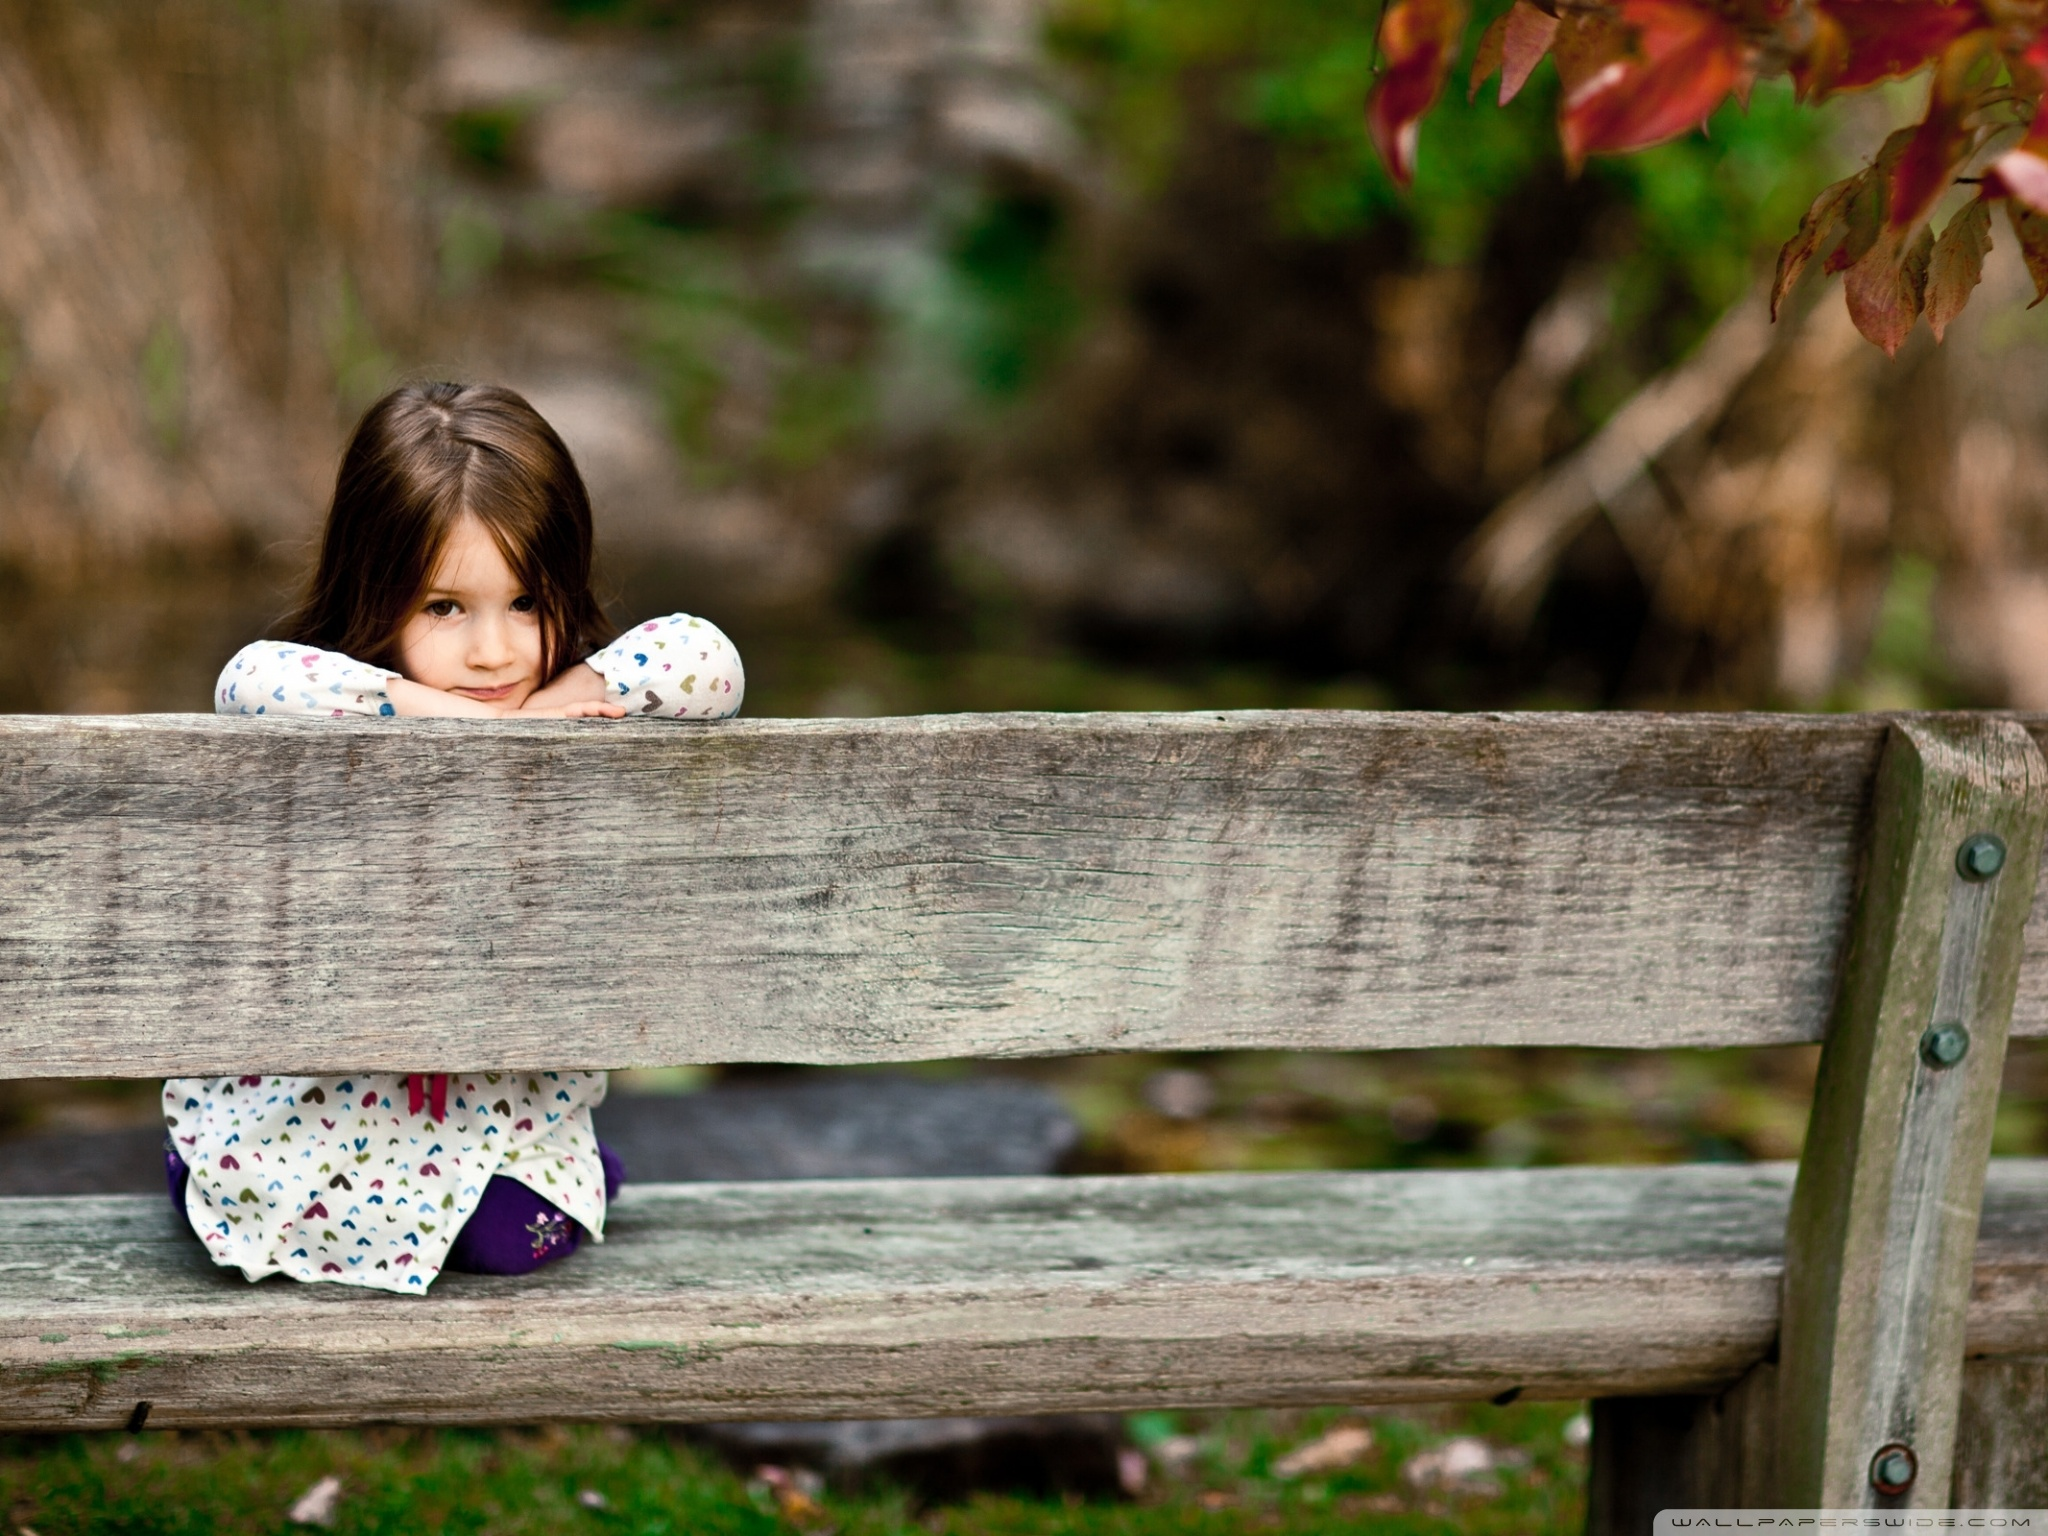 child_sitting_on_a_bench-wallpaper-2048x1536